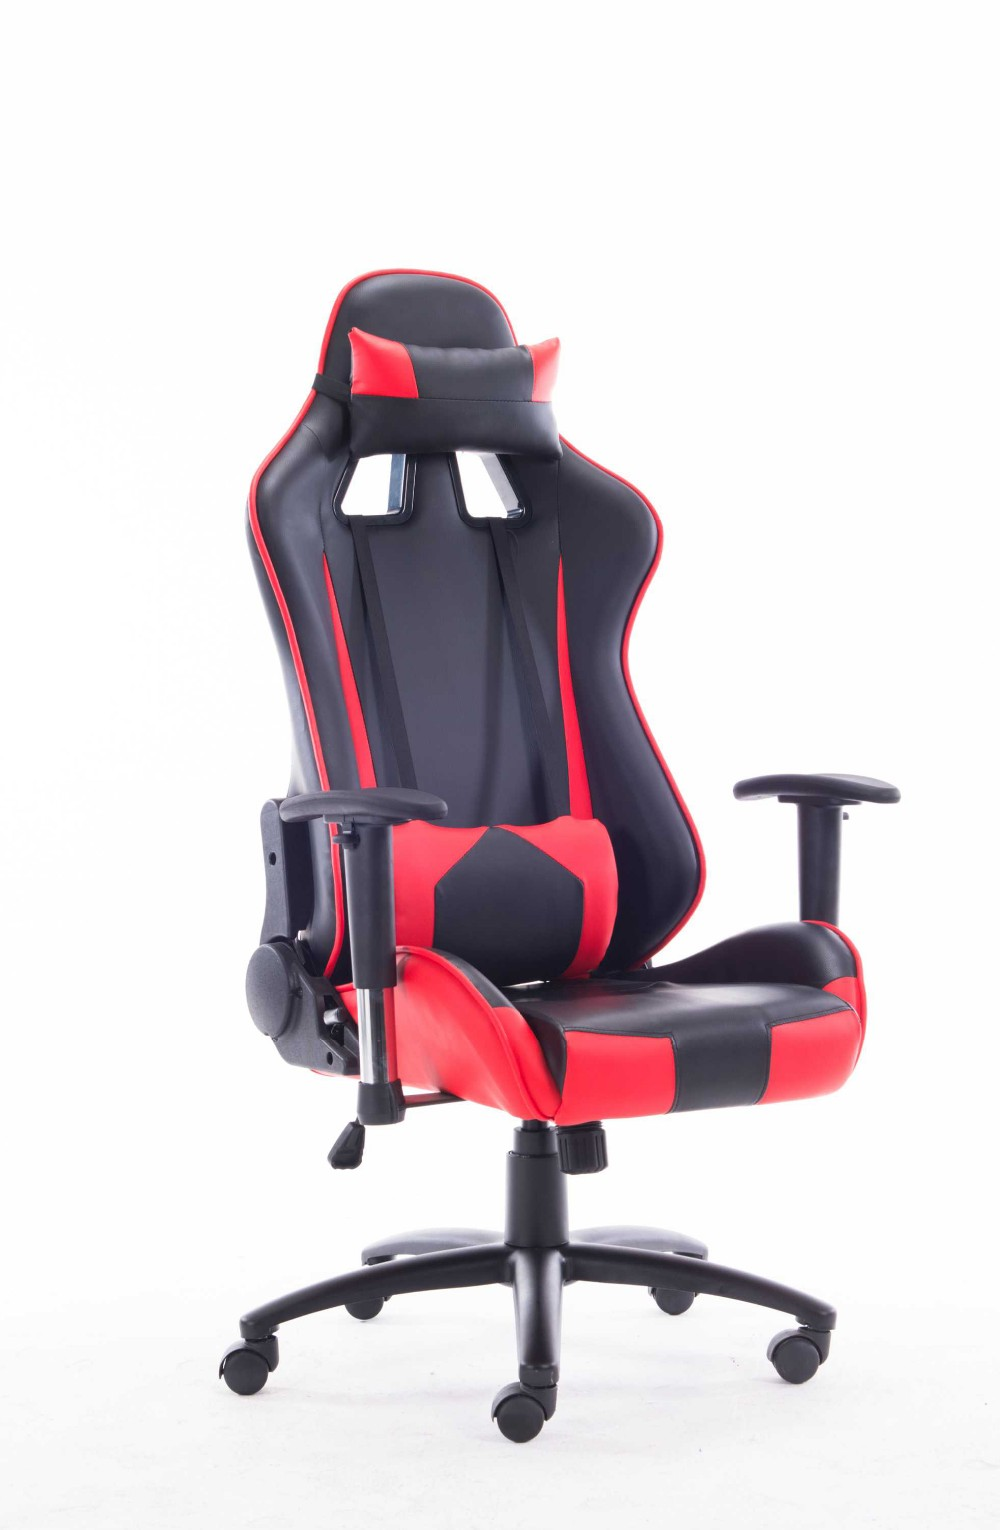 Elegant Workwell Racing Office Car Chair Gaming Chair Bucket Seat Iron Structure  Multifunction Bucket Seat Chair QO